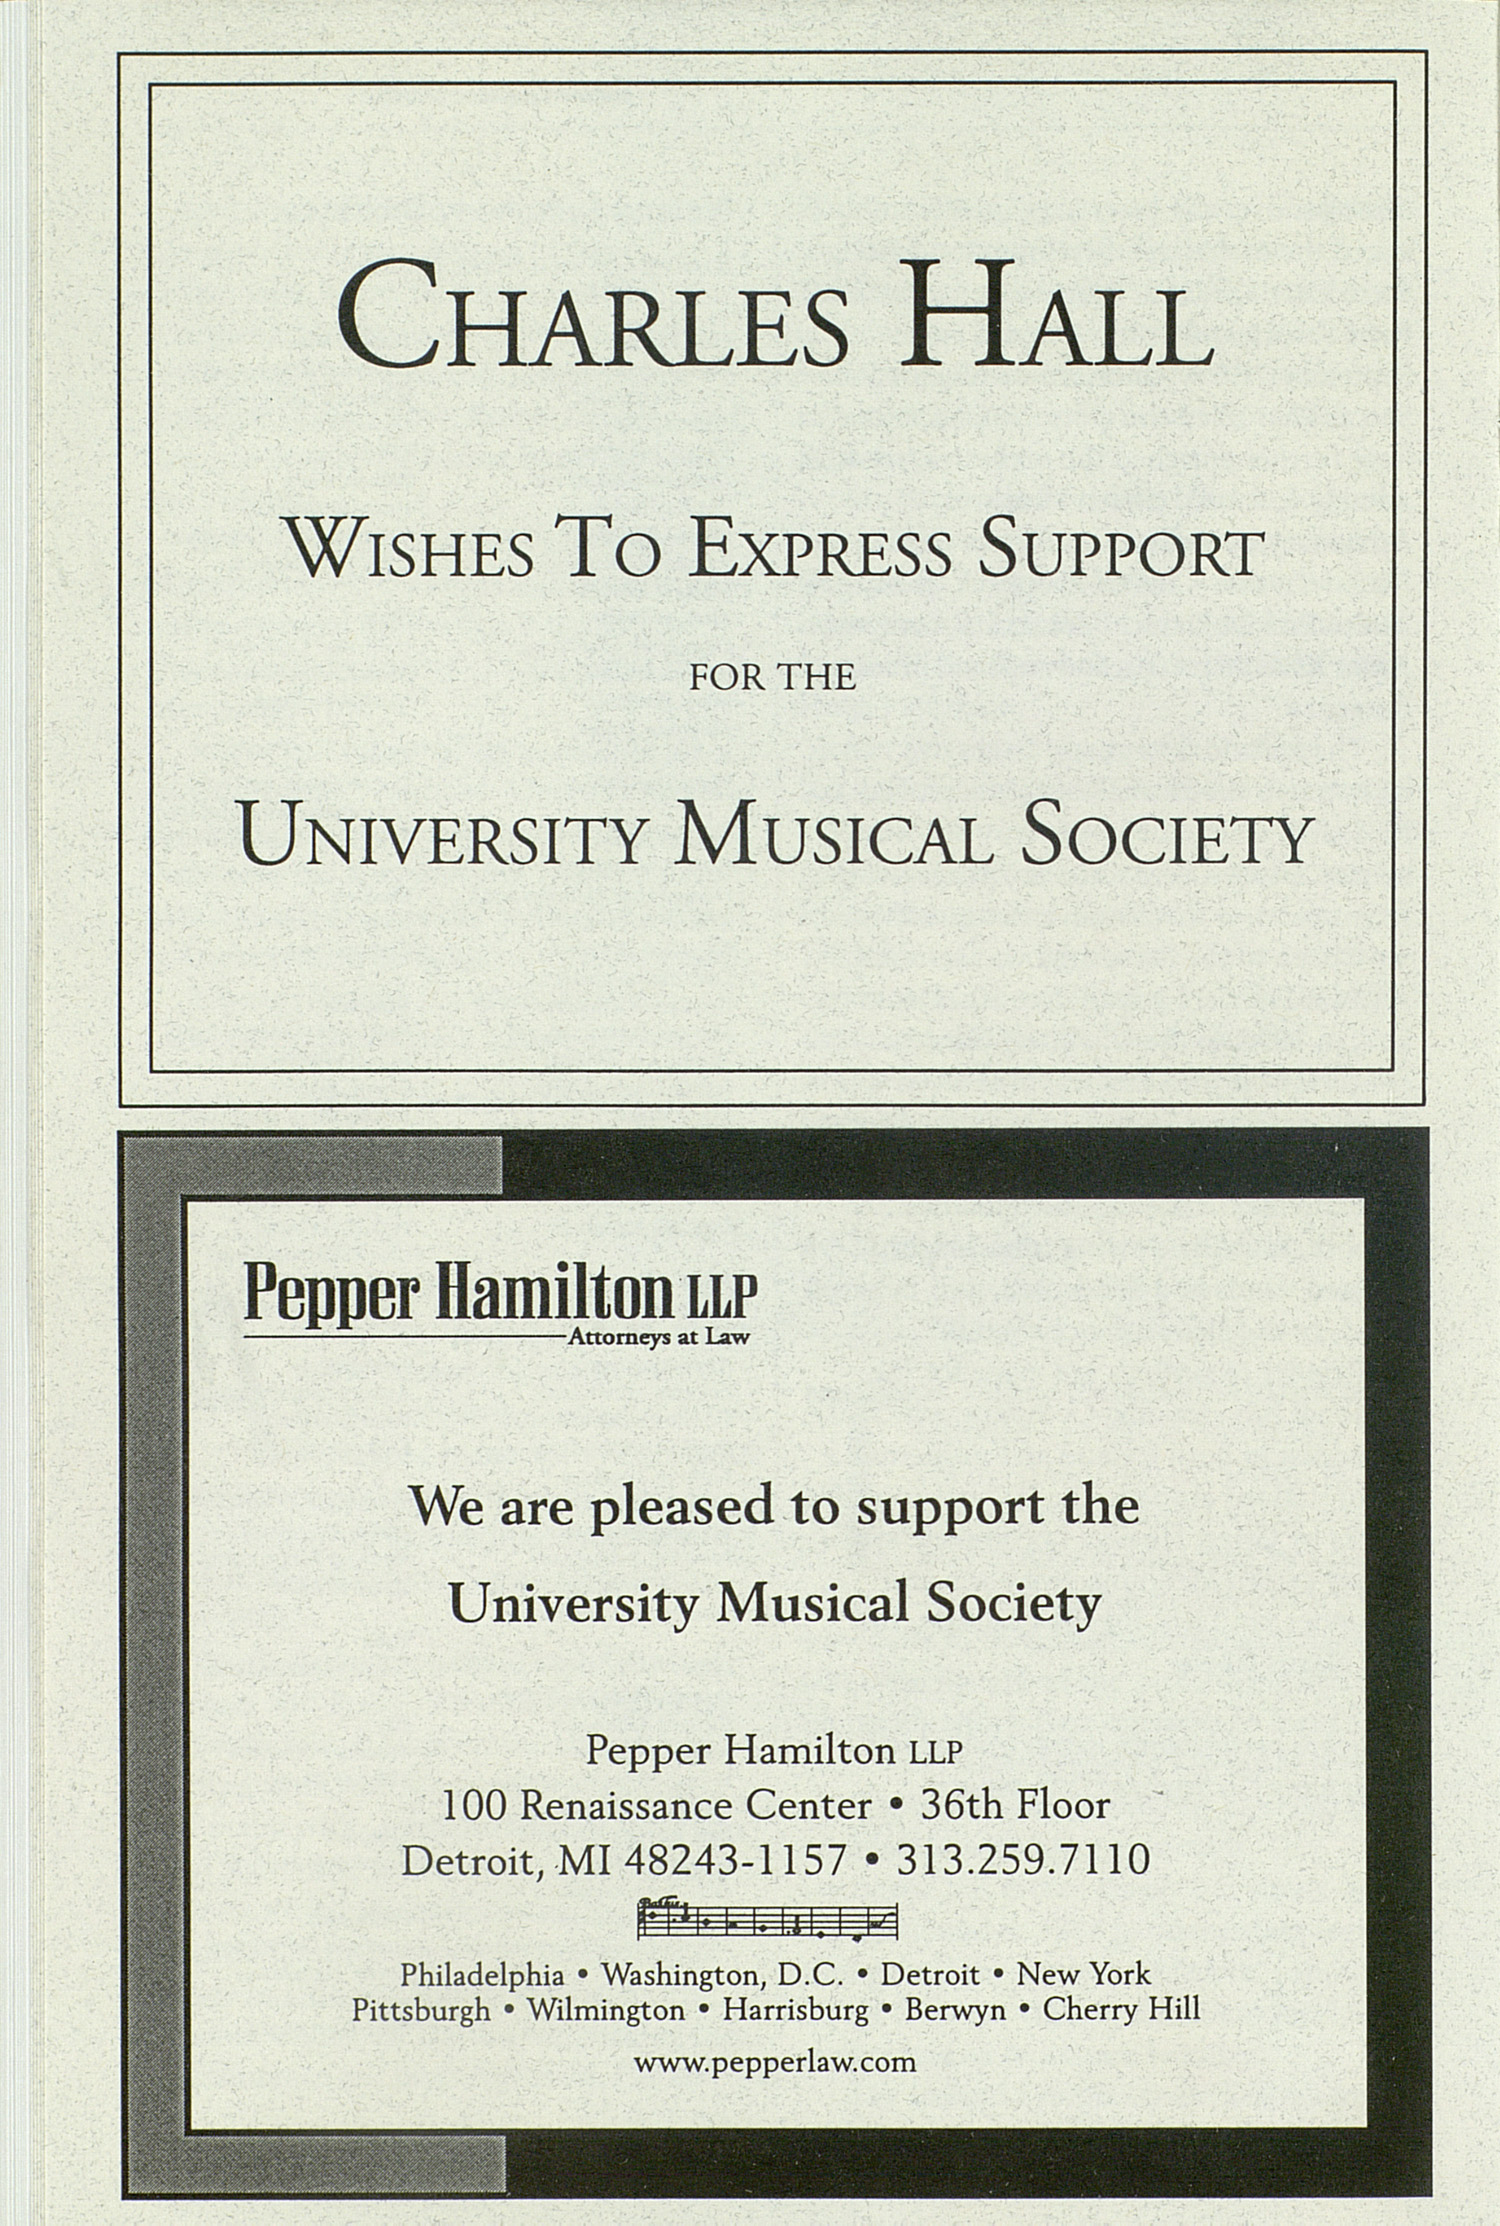 UMS Concert Program, Thursday Oct. 12 To 14: University Musical Society: Fall 2000 - Thursday Oct. 12 To 14 --  image